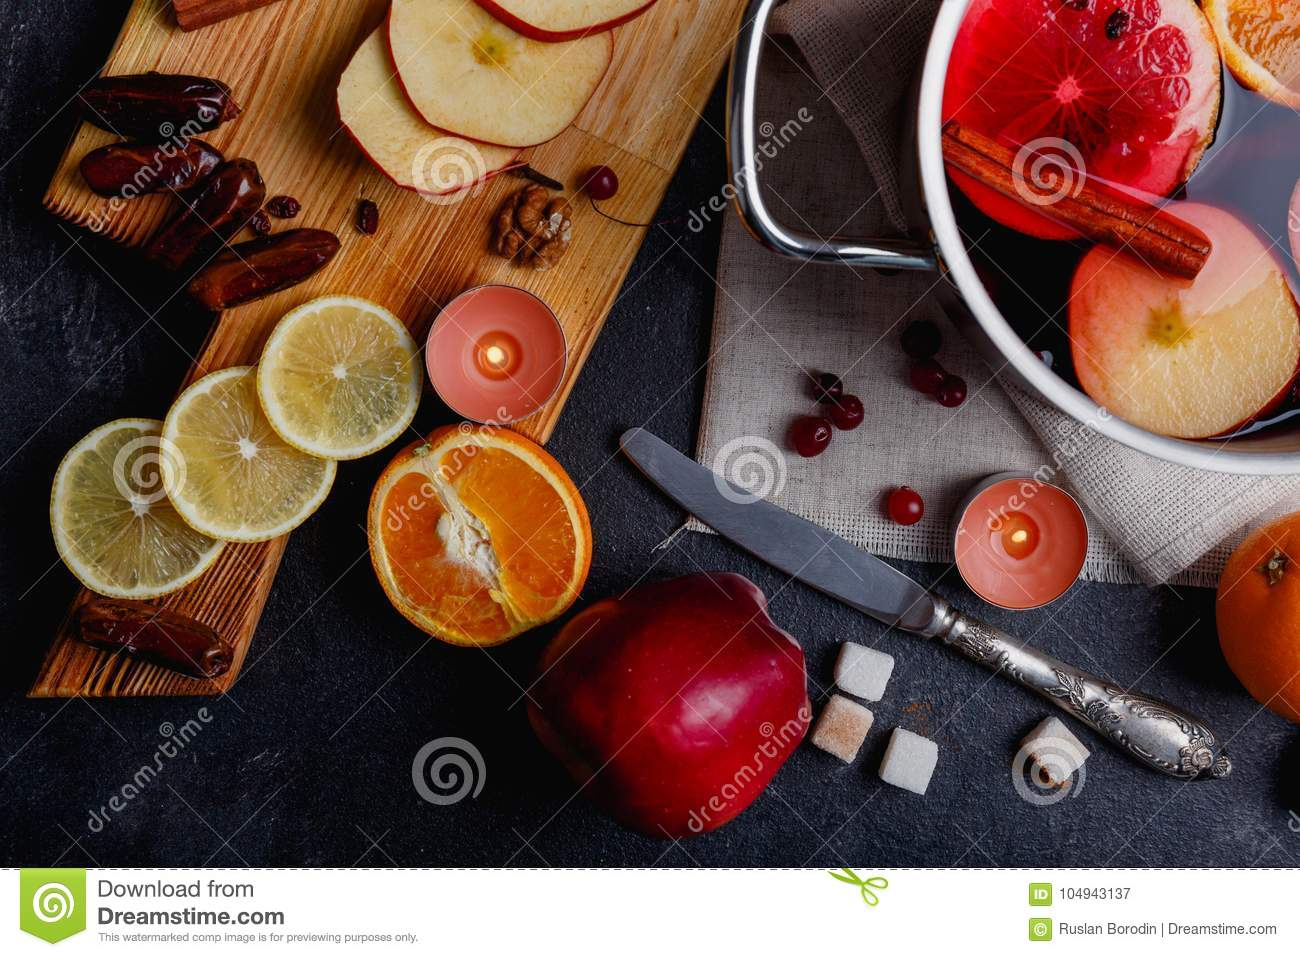 On a table is a board with dates and slices of apples and lemon, a knife and a pan with a mulled wine. View from above.